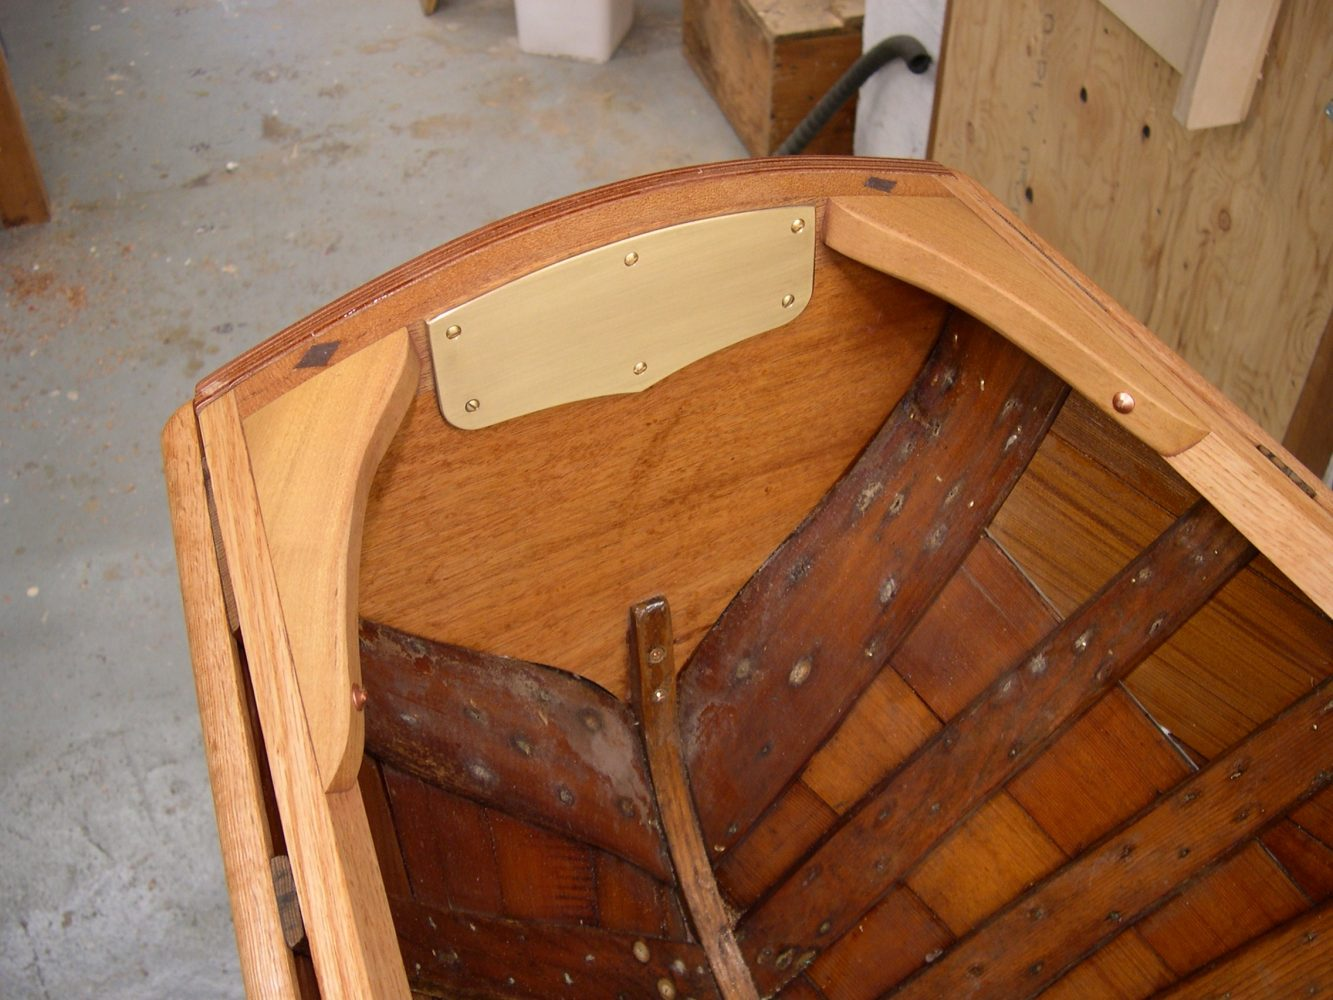 Thompson canoe transom